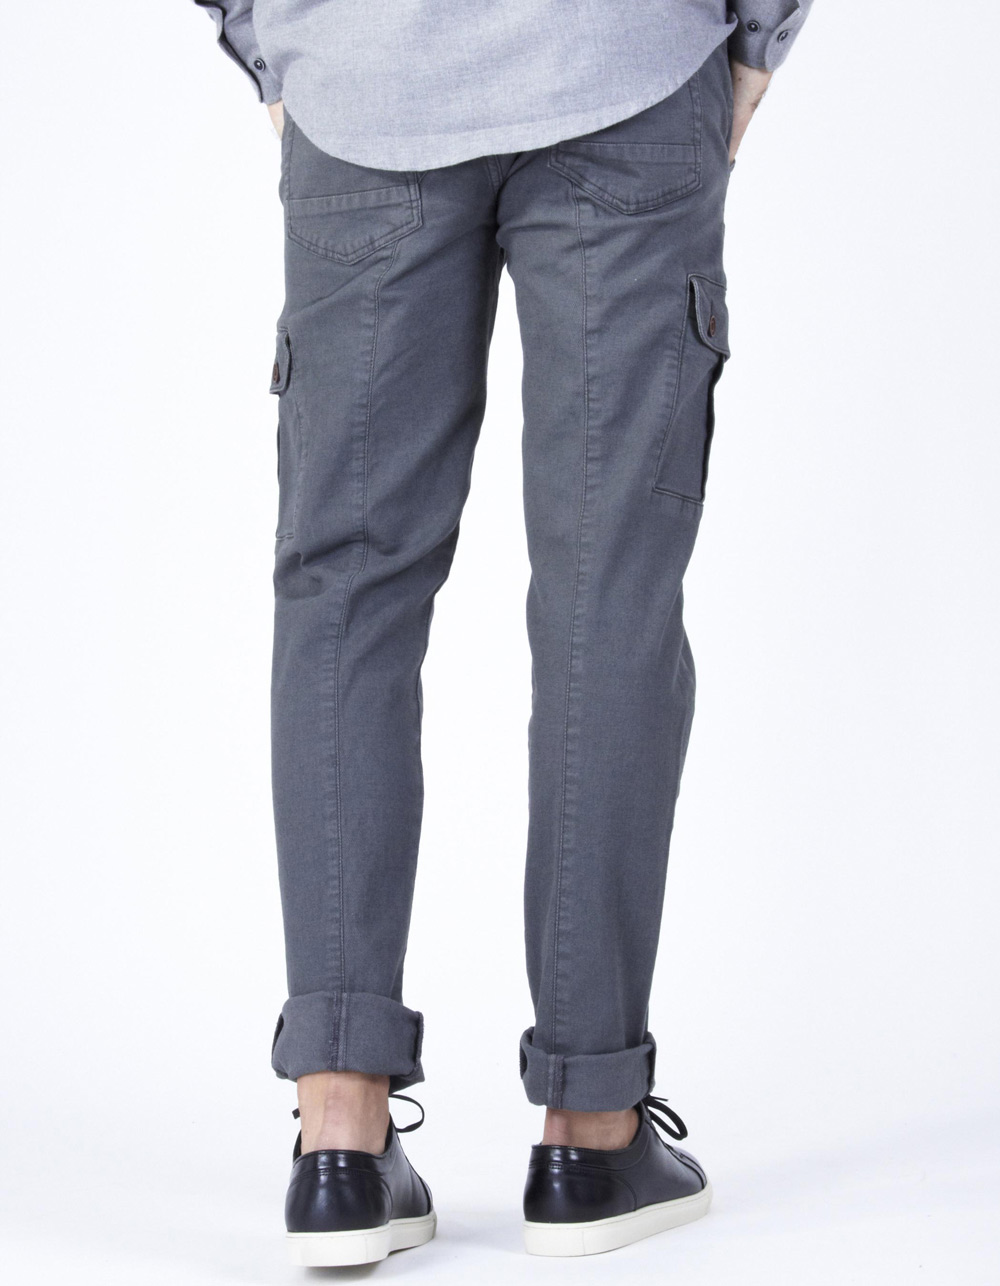 Grey cargo trousers with micro-pattern - Backside